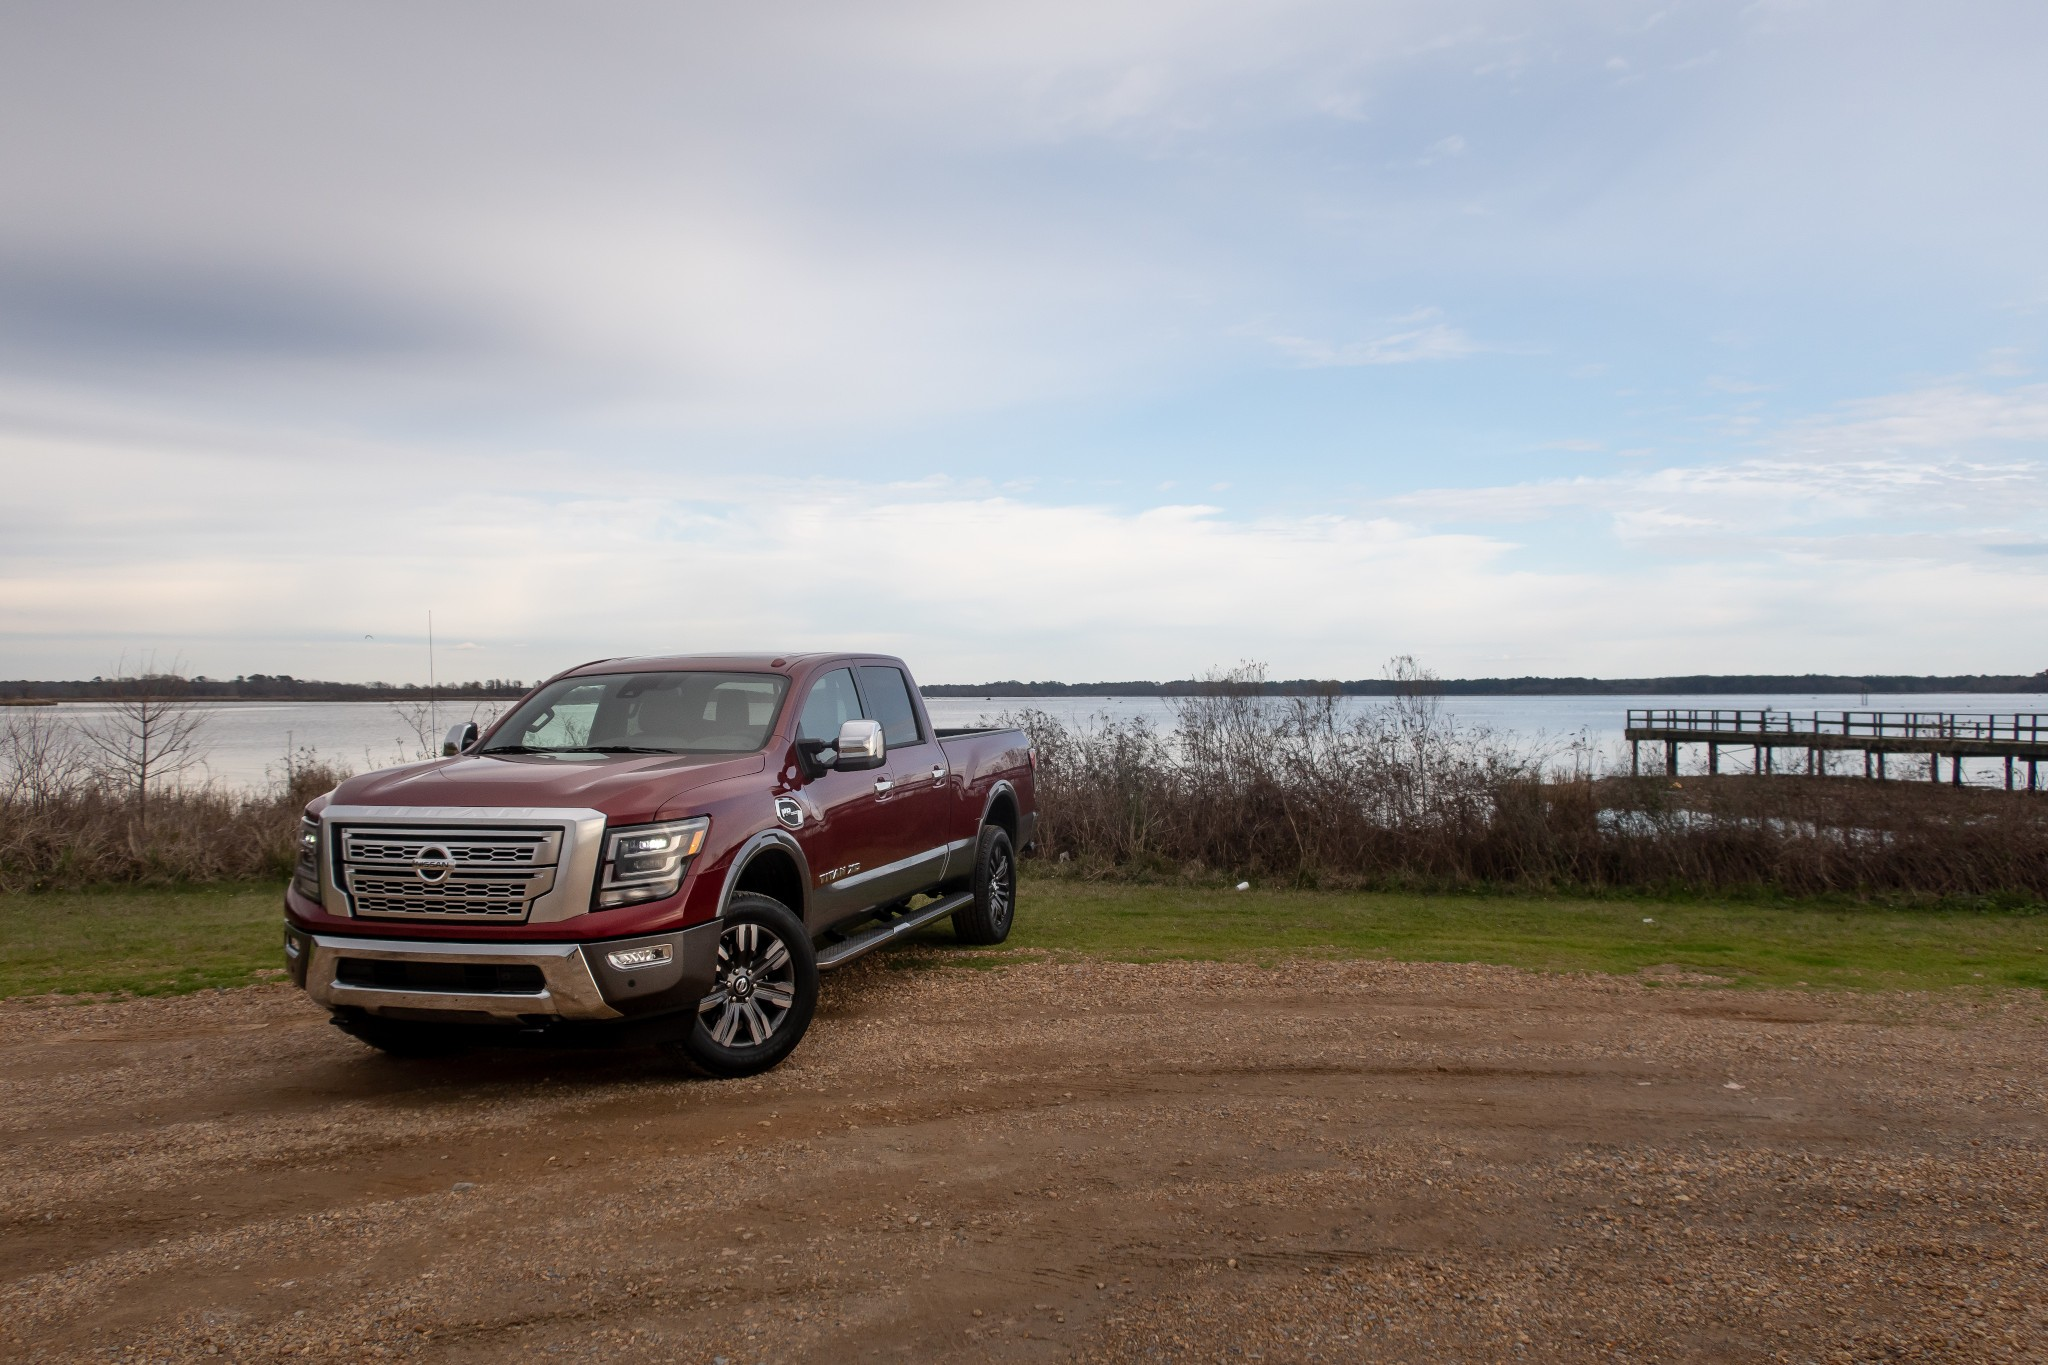 2020 Nissan Titan XD Review: More Power, More Payload, More Sense